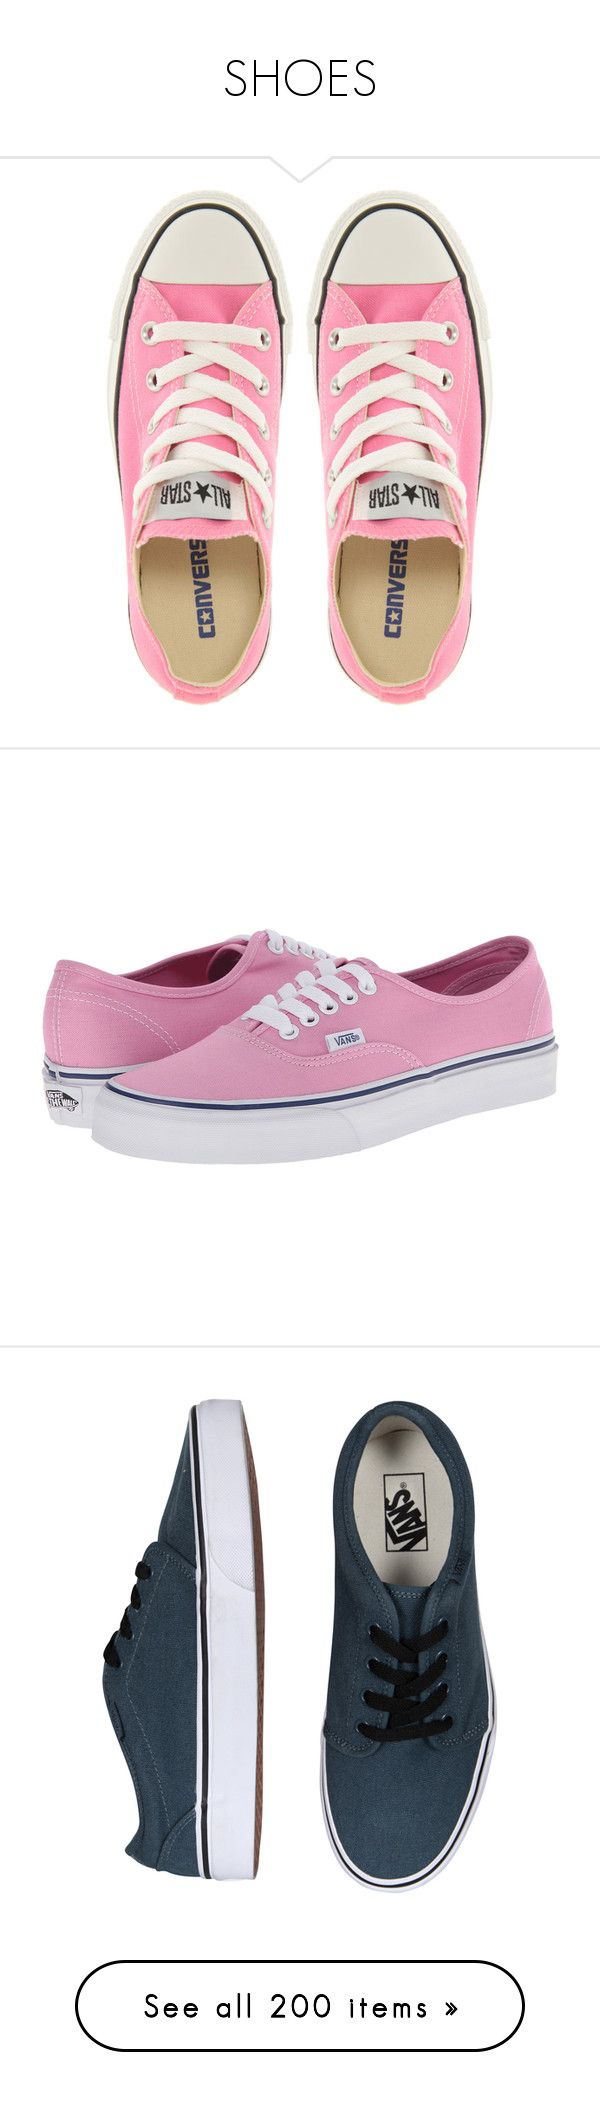 """""""SHOES"""" by clauditaam ❤ liked on Polyvore featuring shoes, sneakers, converse, zapatos, converse sneakers, high top canvas sneakers, lace up sneakers, laced up shoes, star sneakers and pink"""